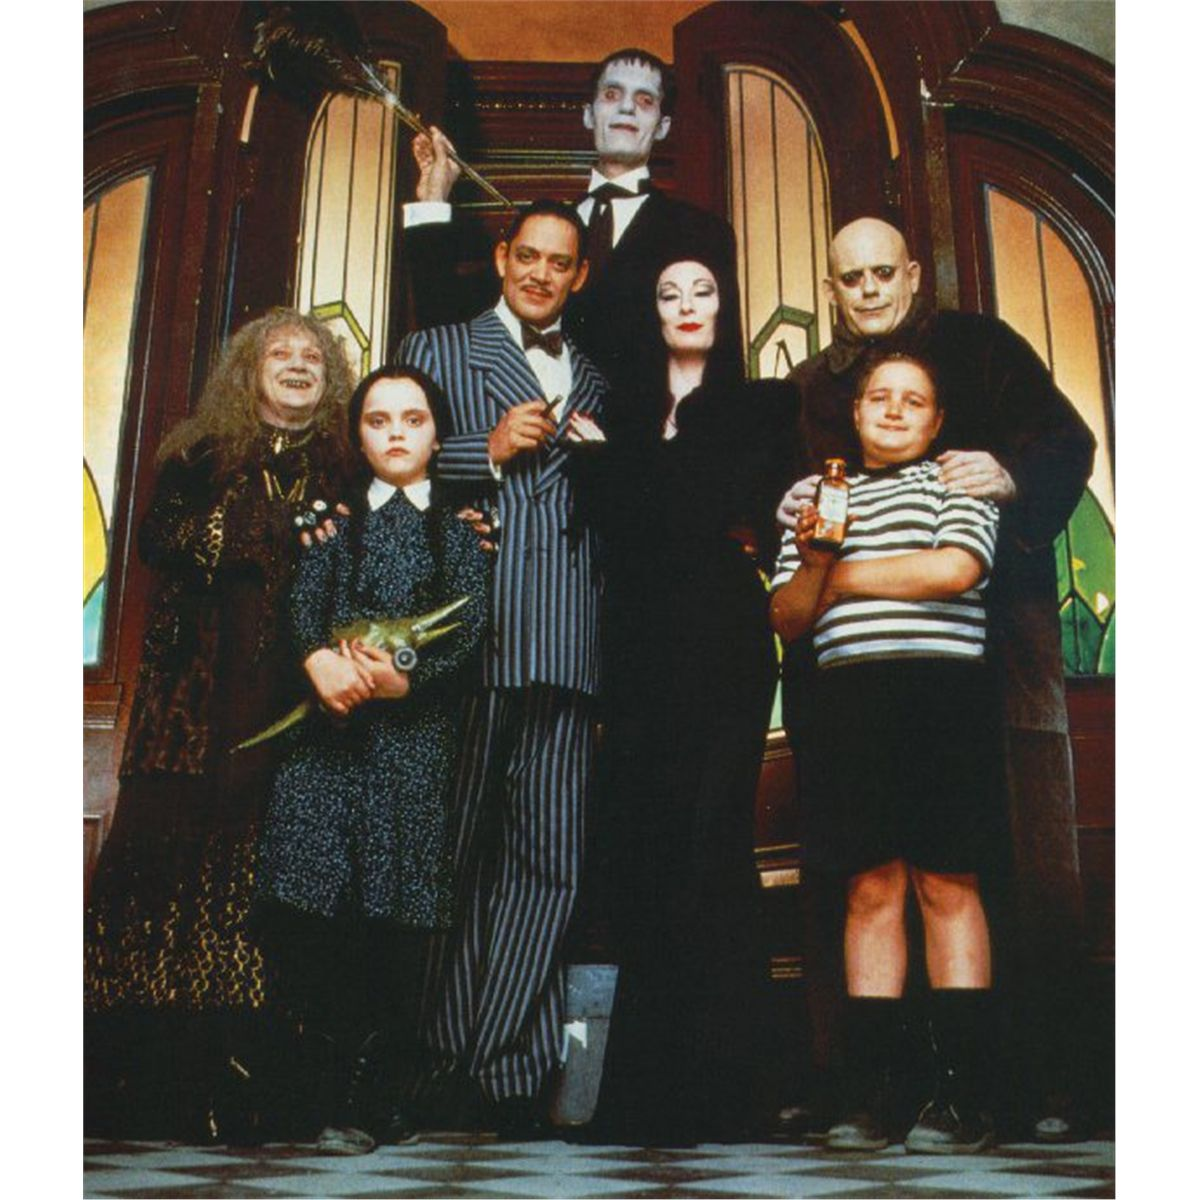 The Addams Family Image 3 The Addams Family 3